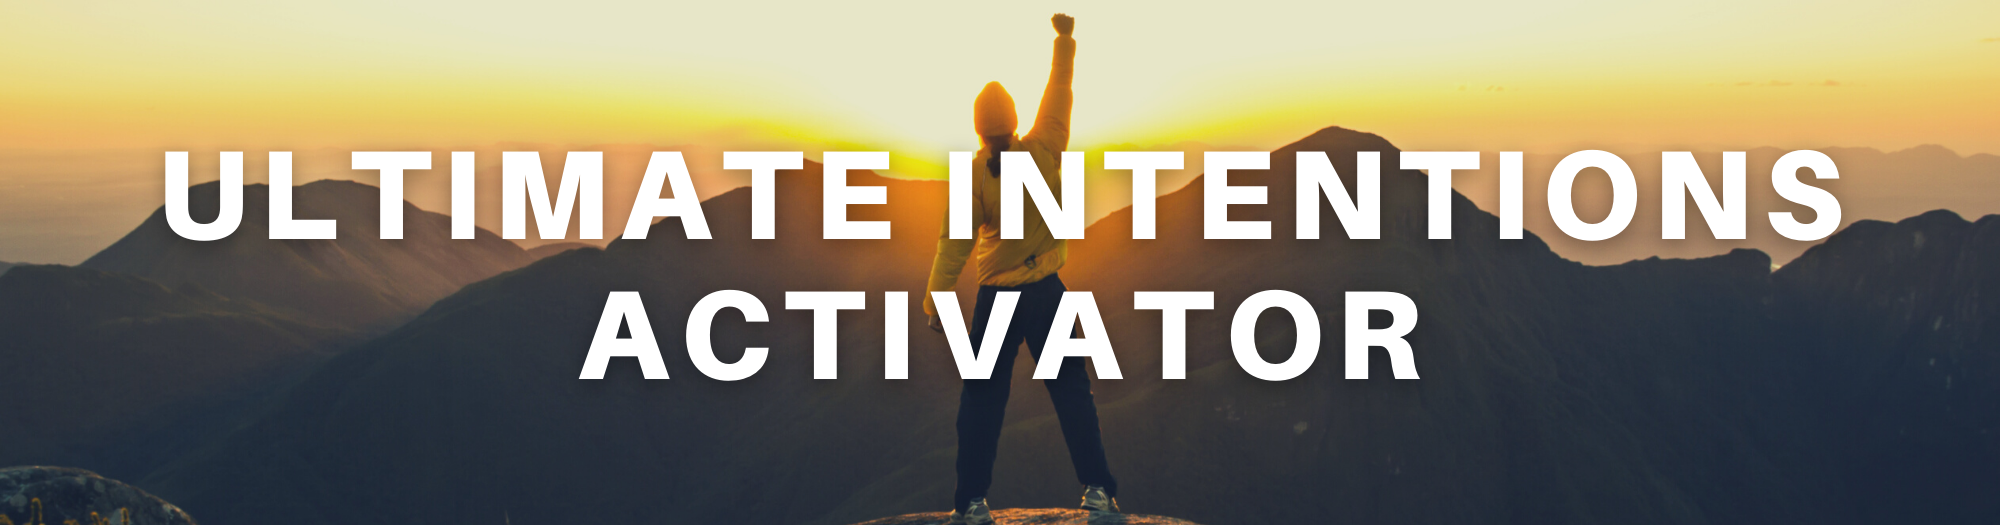 Ultimate Intentions Activator